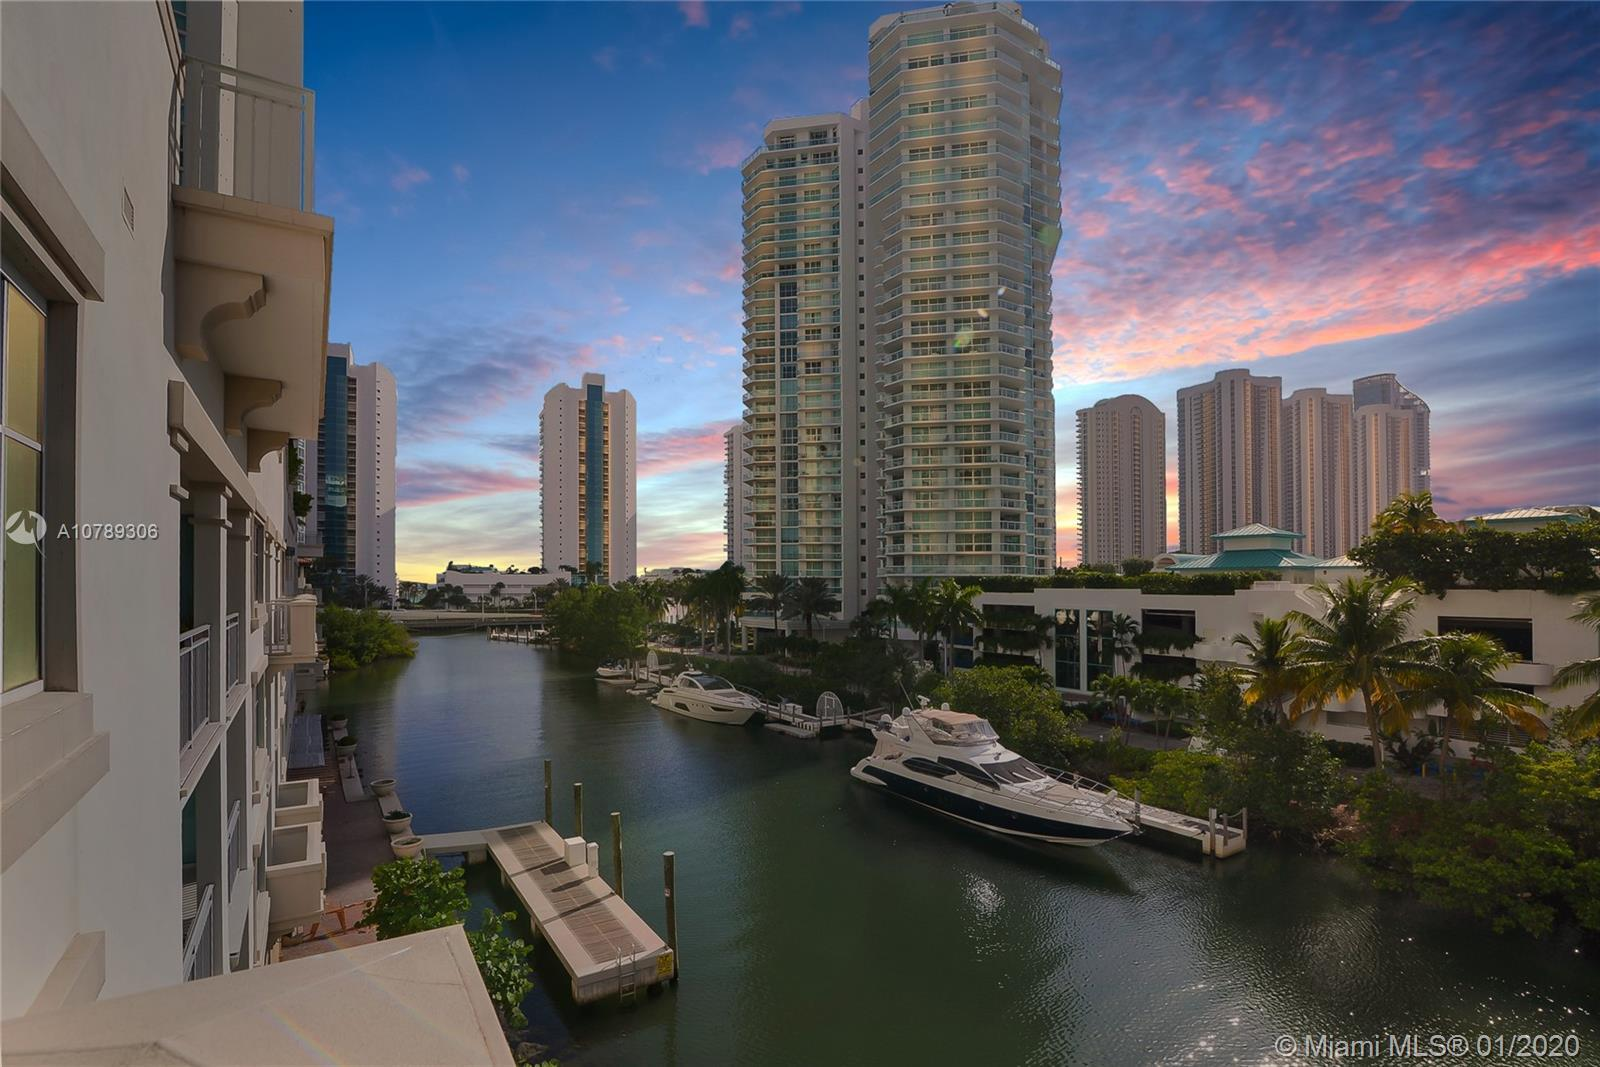 Immaculate Townhouse at the St Tropez Sunny Isles. This large 4 bedroom, 3 1/2 bathrooms Residence w